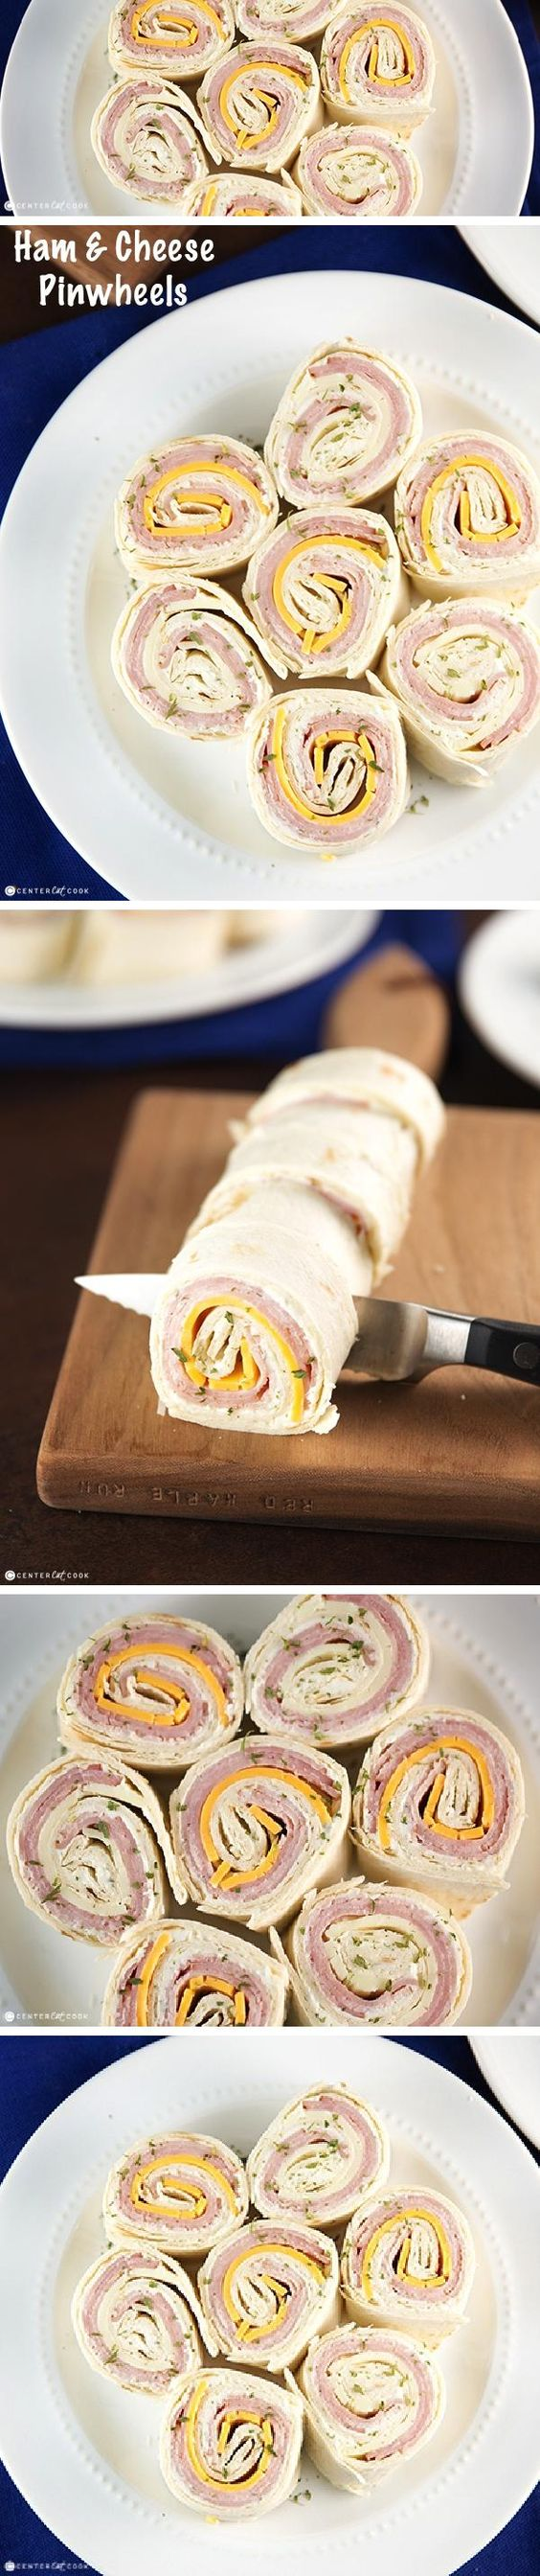 These HAM and CHEESE PINWHEELS are made with seasoned cream cheese spread, fresh slices of deli ham and cheese and rolled up on tortillas and cut into pieces. The result is a fun appetizer or snack great for any occasion. This is the perfect quick and easy appetizer!